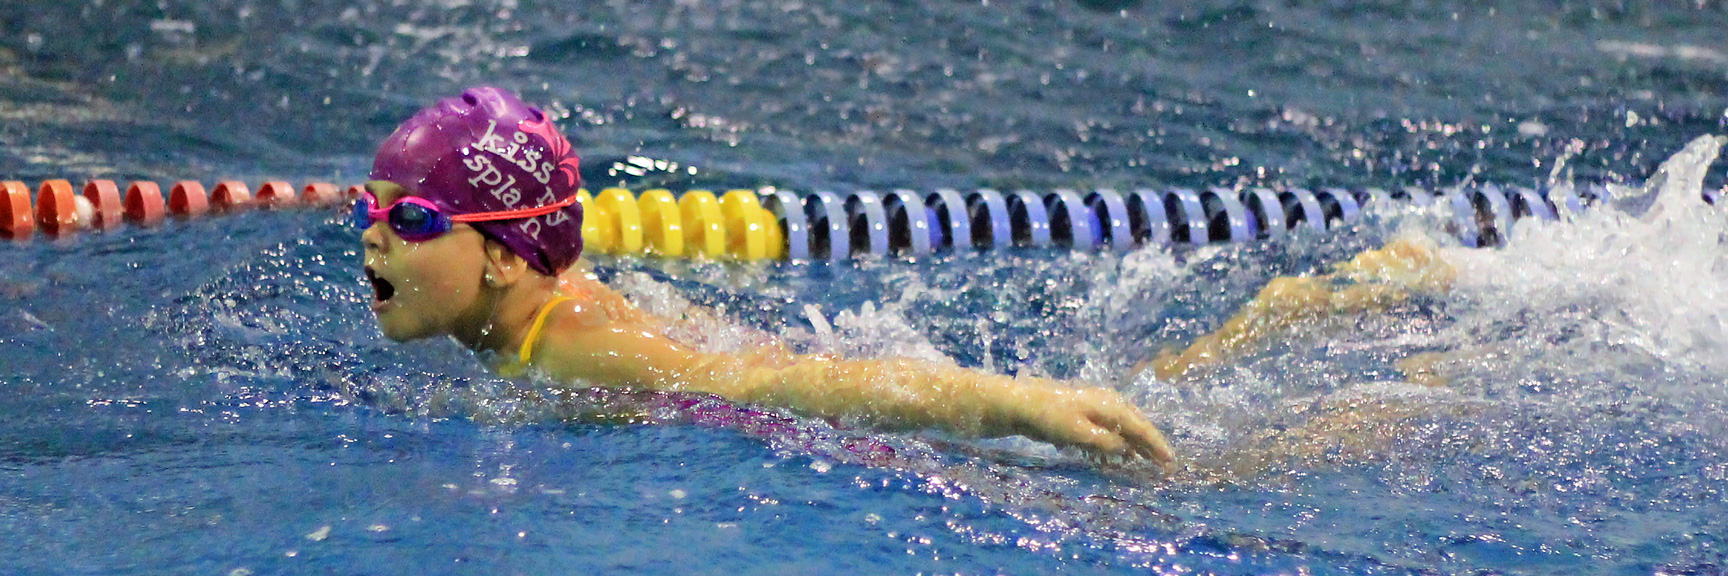 JCC of the Lehigh Valley Aquatics Swimming Swim Team Competition CC Attribution 3.0 Kaitlyn Stefanowicz